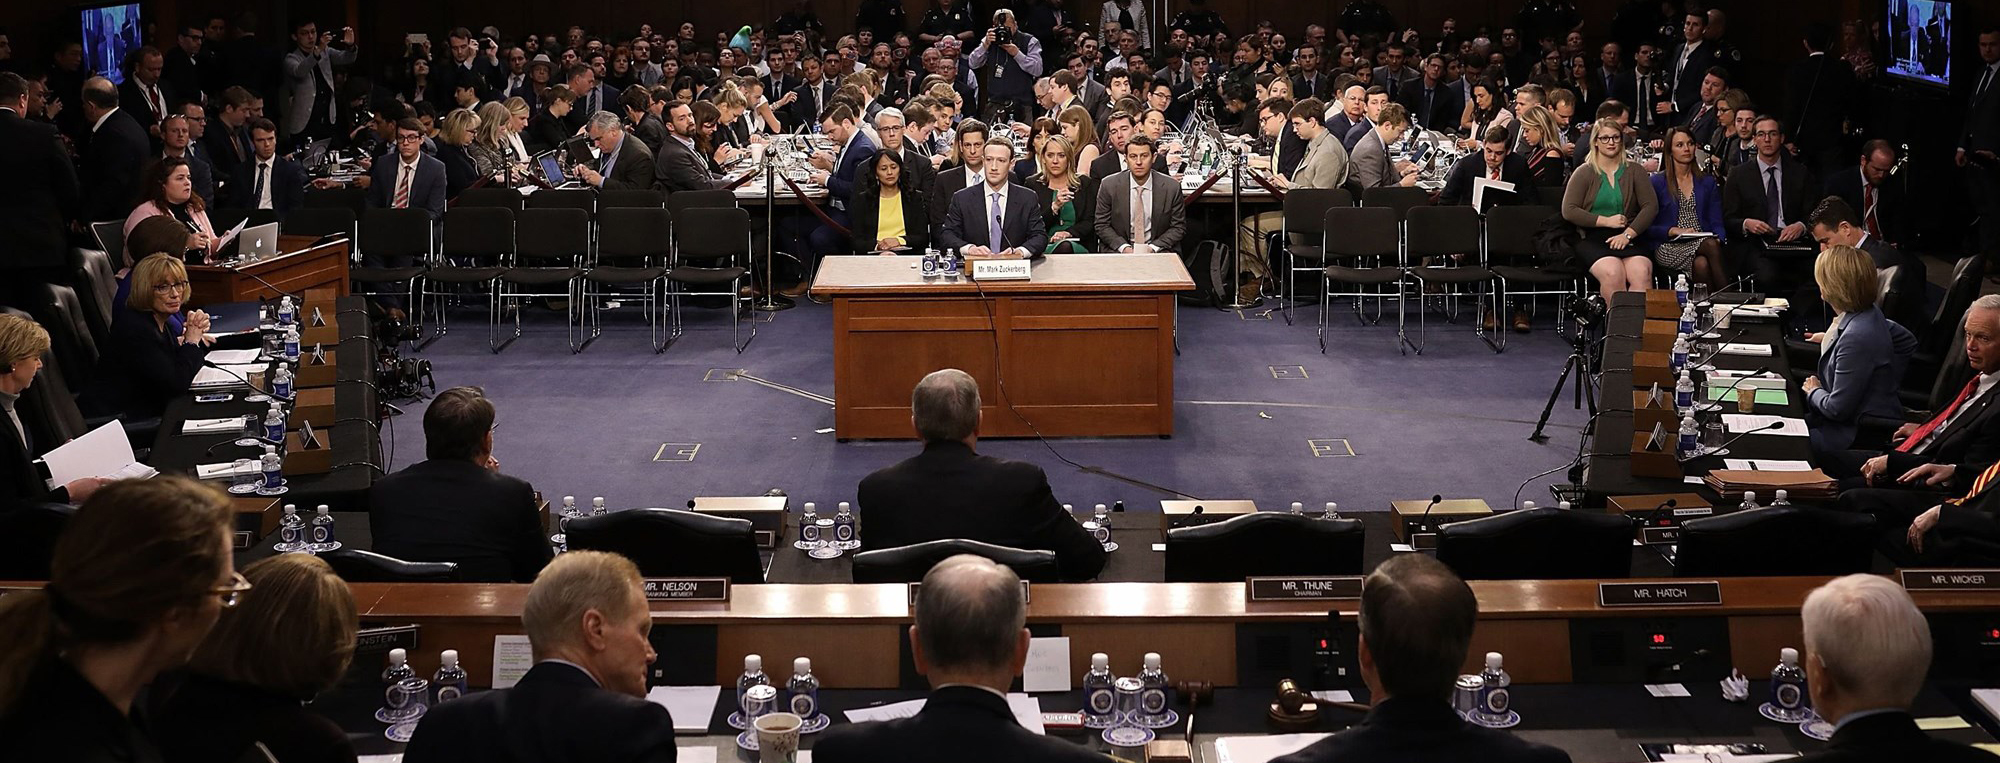 Facebook founder Mark Zuckerberg testifies before Congress on April 10, 2018.